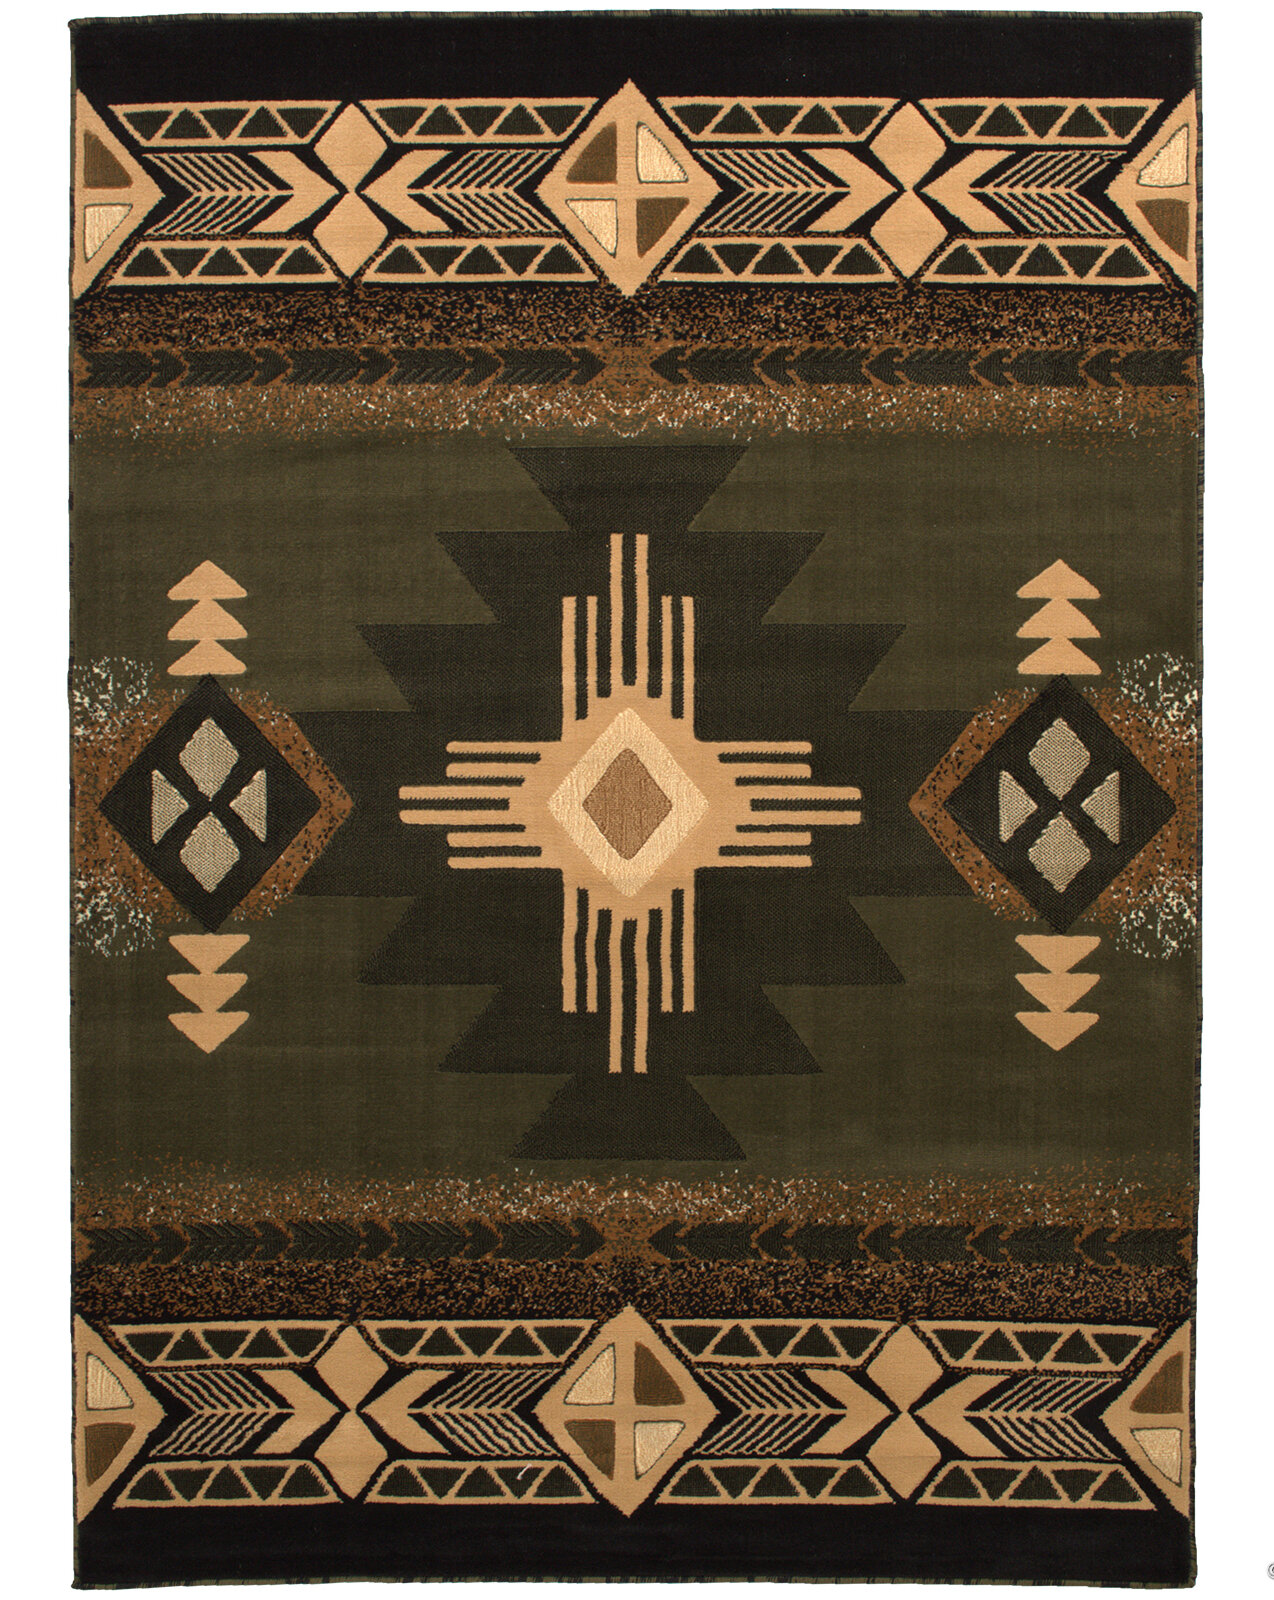 Loon Peak Iberide High Quality Woven Native American Runner Double Shot Drop Sch Carving Sage Green Area Rug Reviews Wayfair